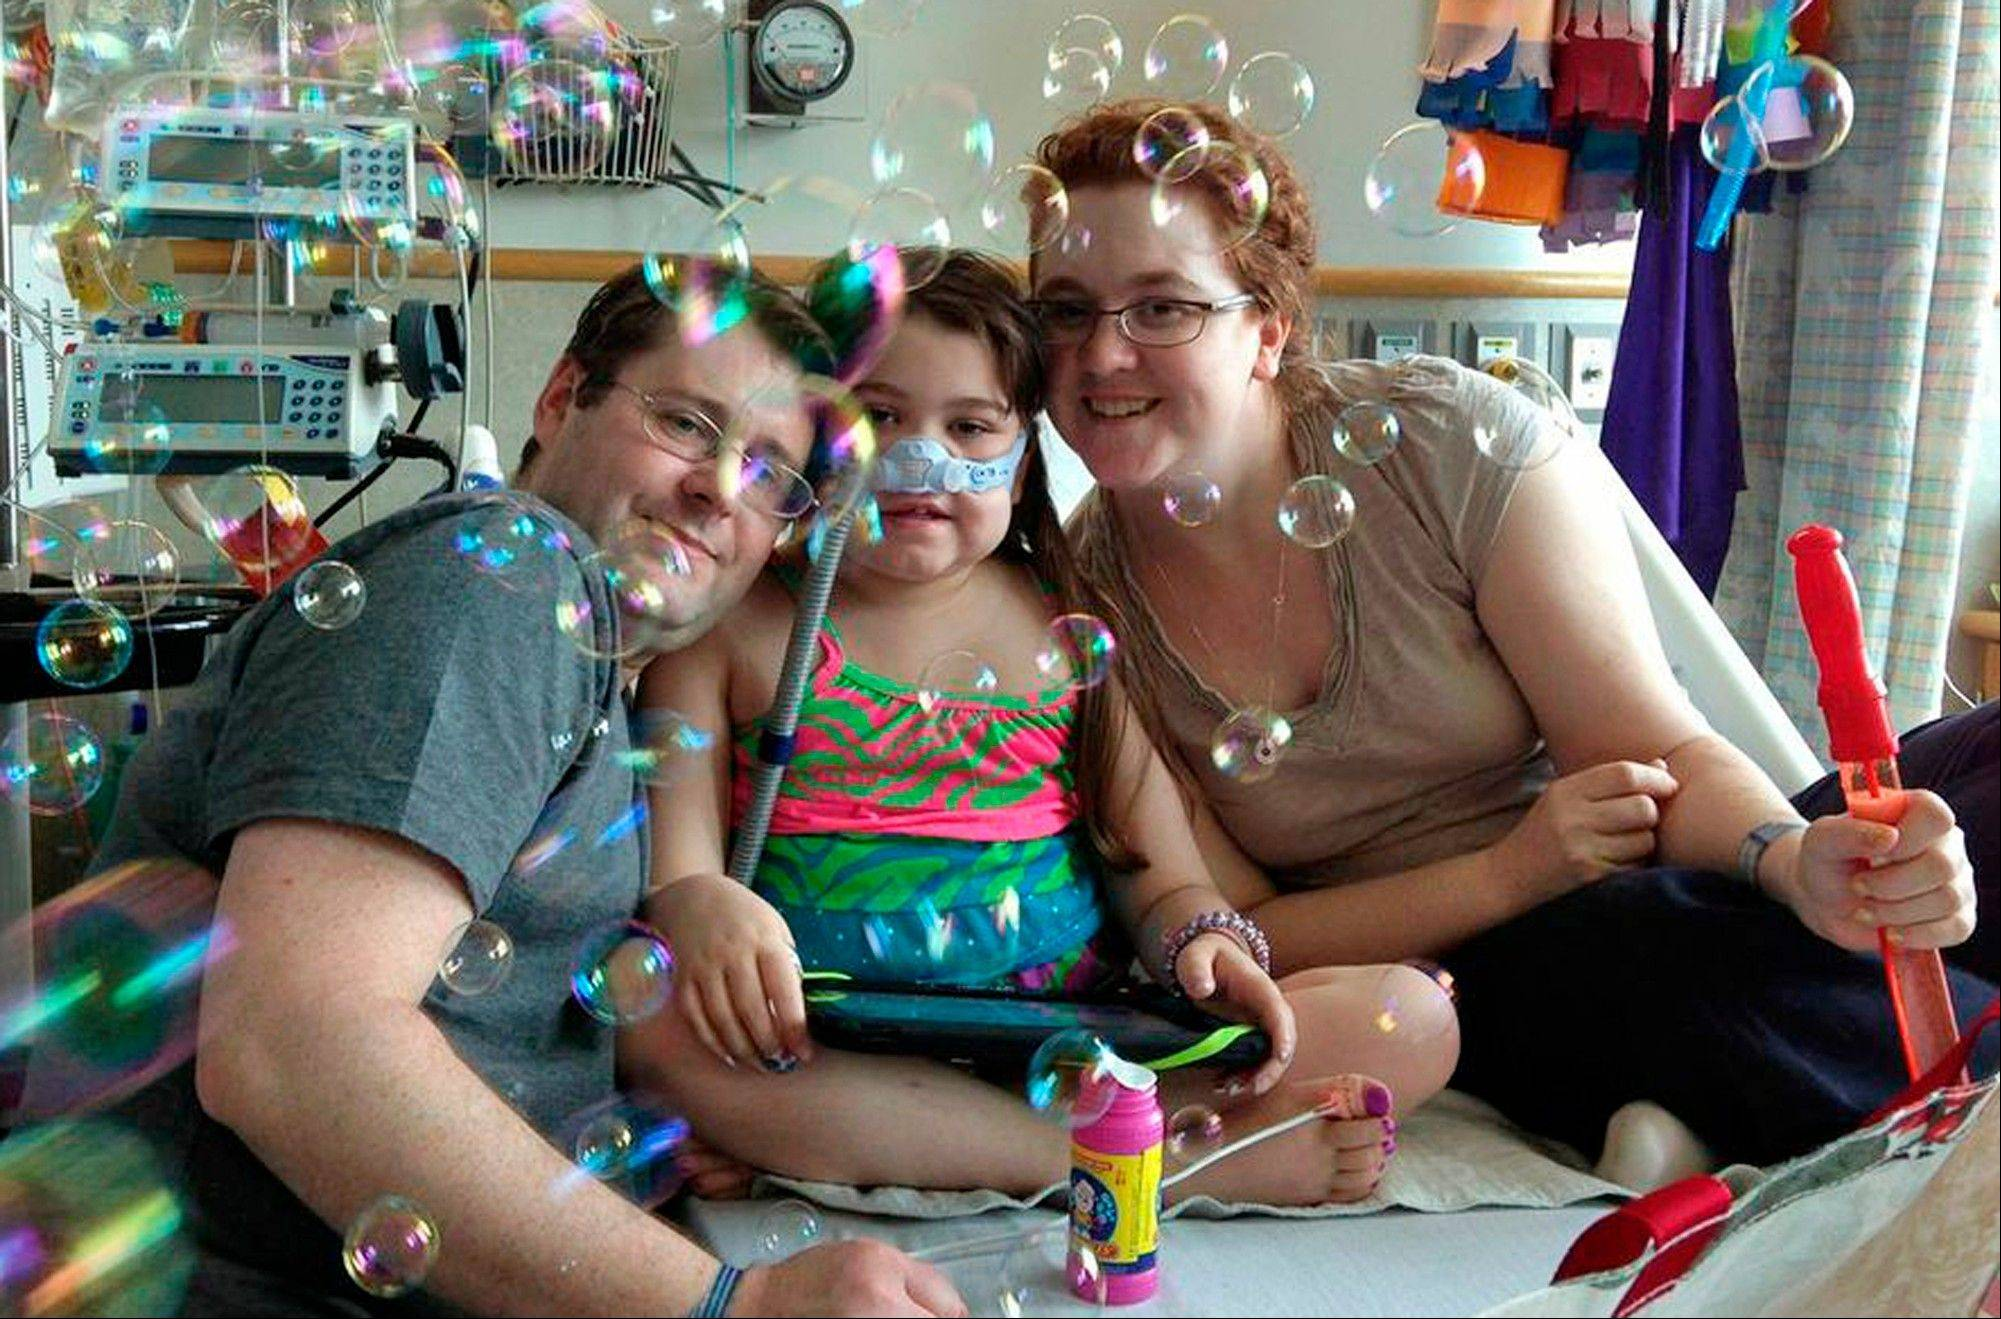 Sarah Murnaghan, center, celebrates the 100th day of her stay in Children�s Hospital of Philadelphia with her father, Fran, left, and mother, Janet. The 10-year-old suburban Philadelphia girl received a lung transplant there Wednesday, June 12, 2013, her family said.